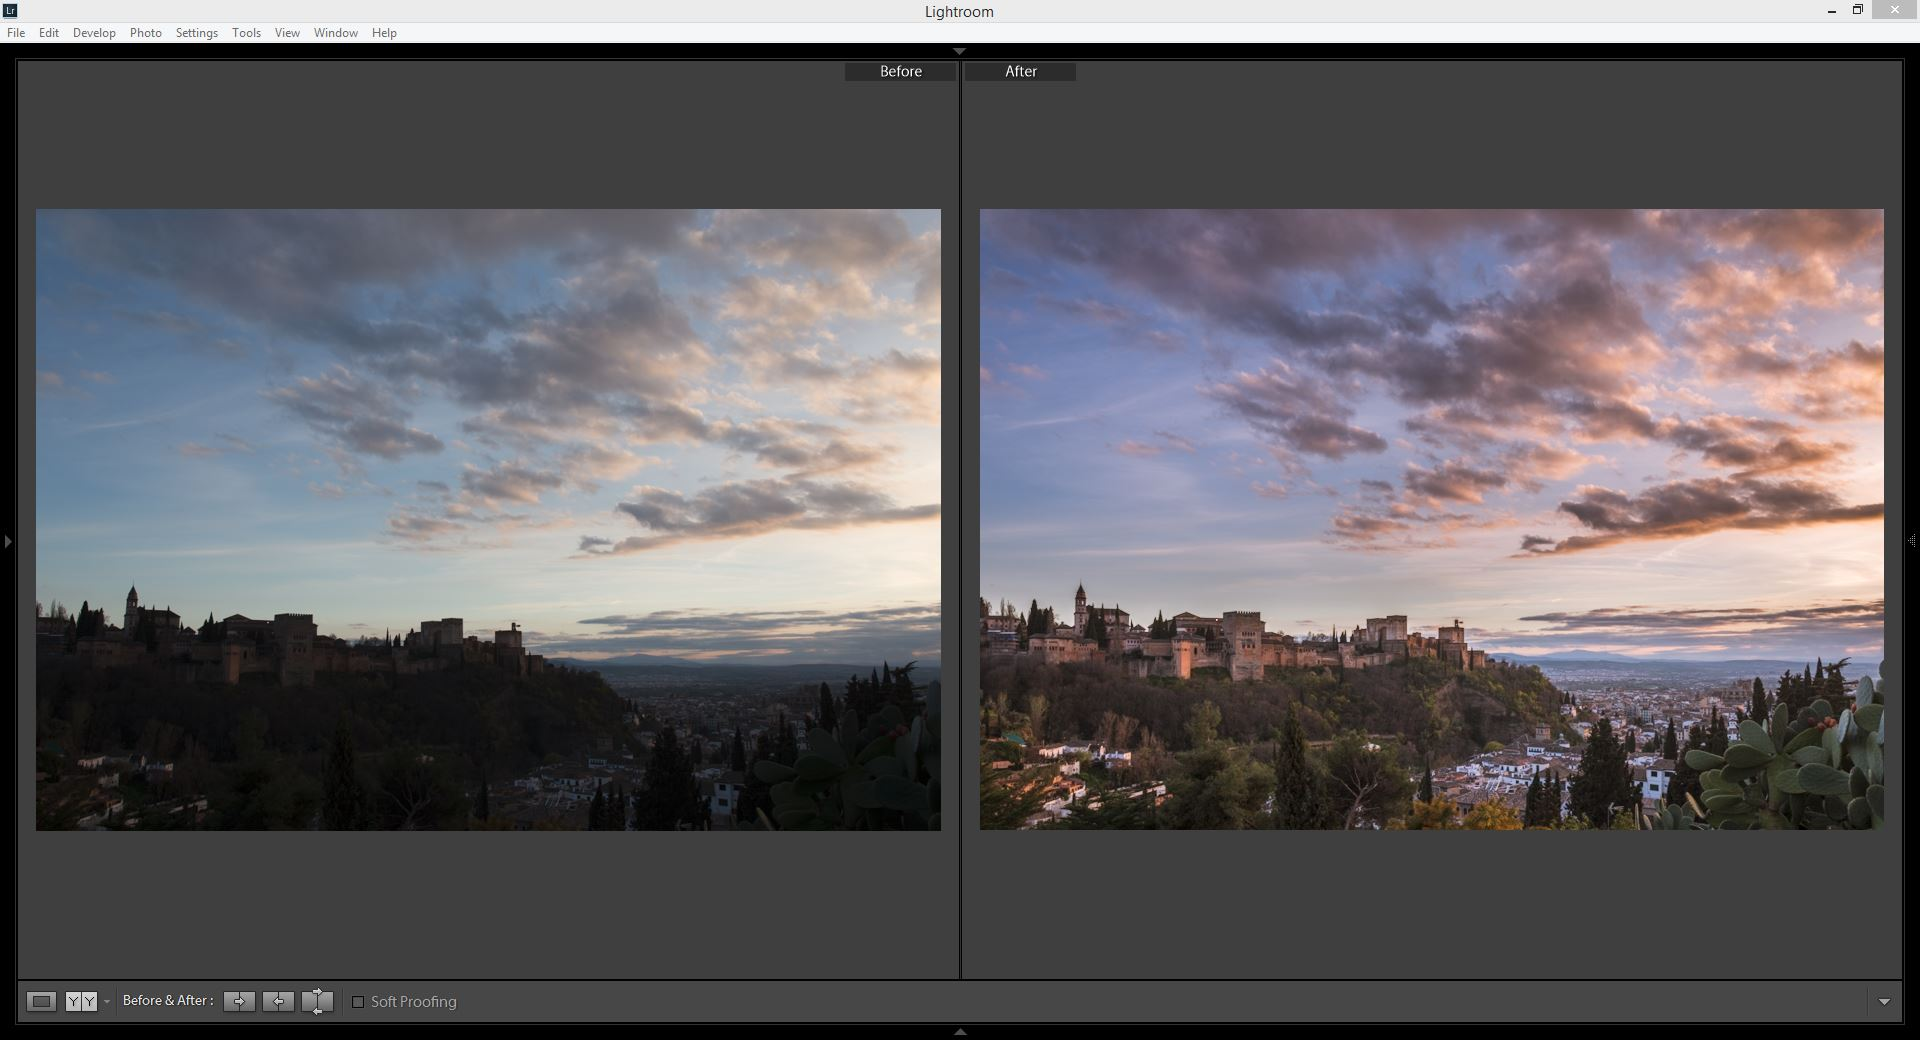 How To: Fix And Improve Your Photos With Lightroom